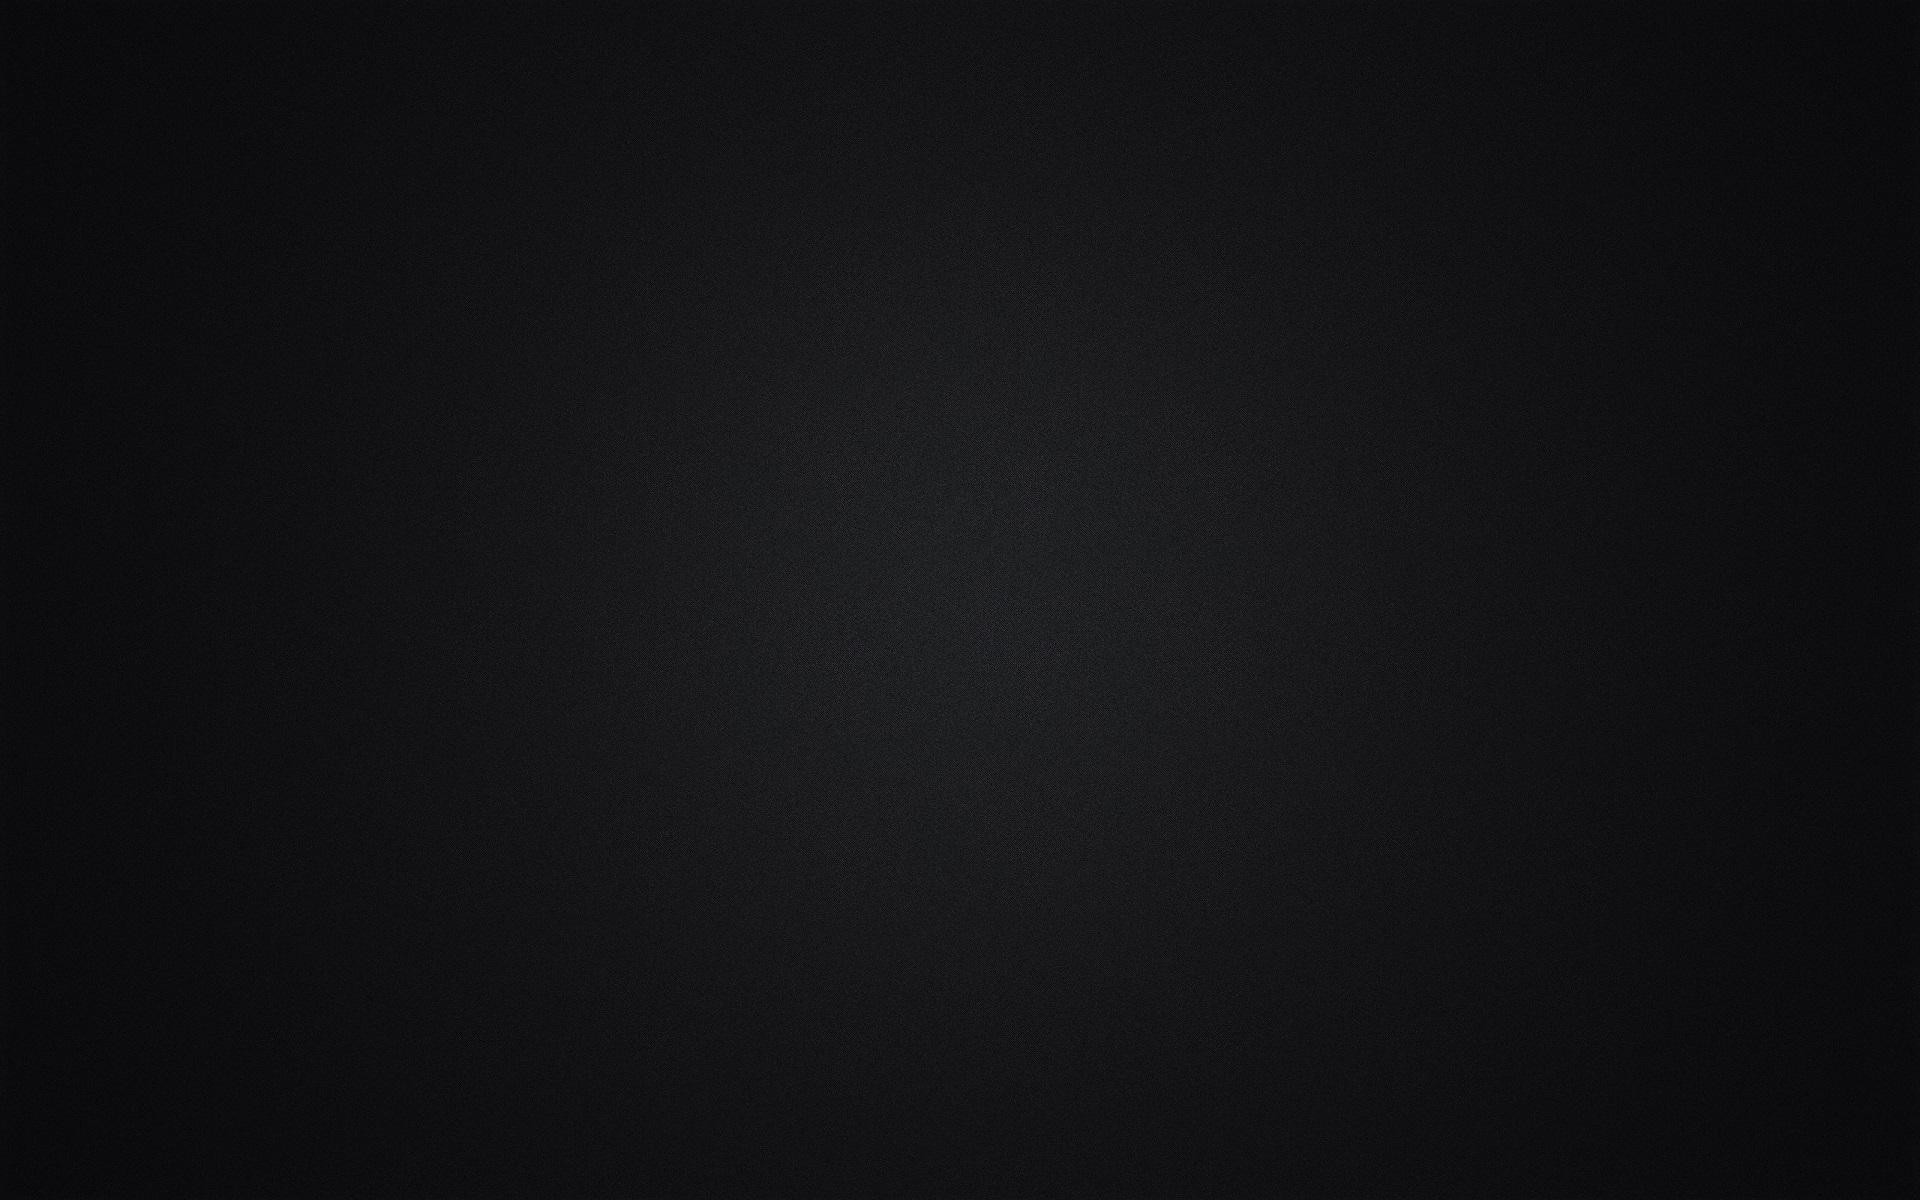 Plain Black Wallpapers ZST43